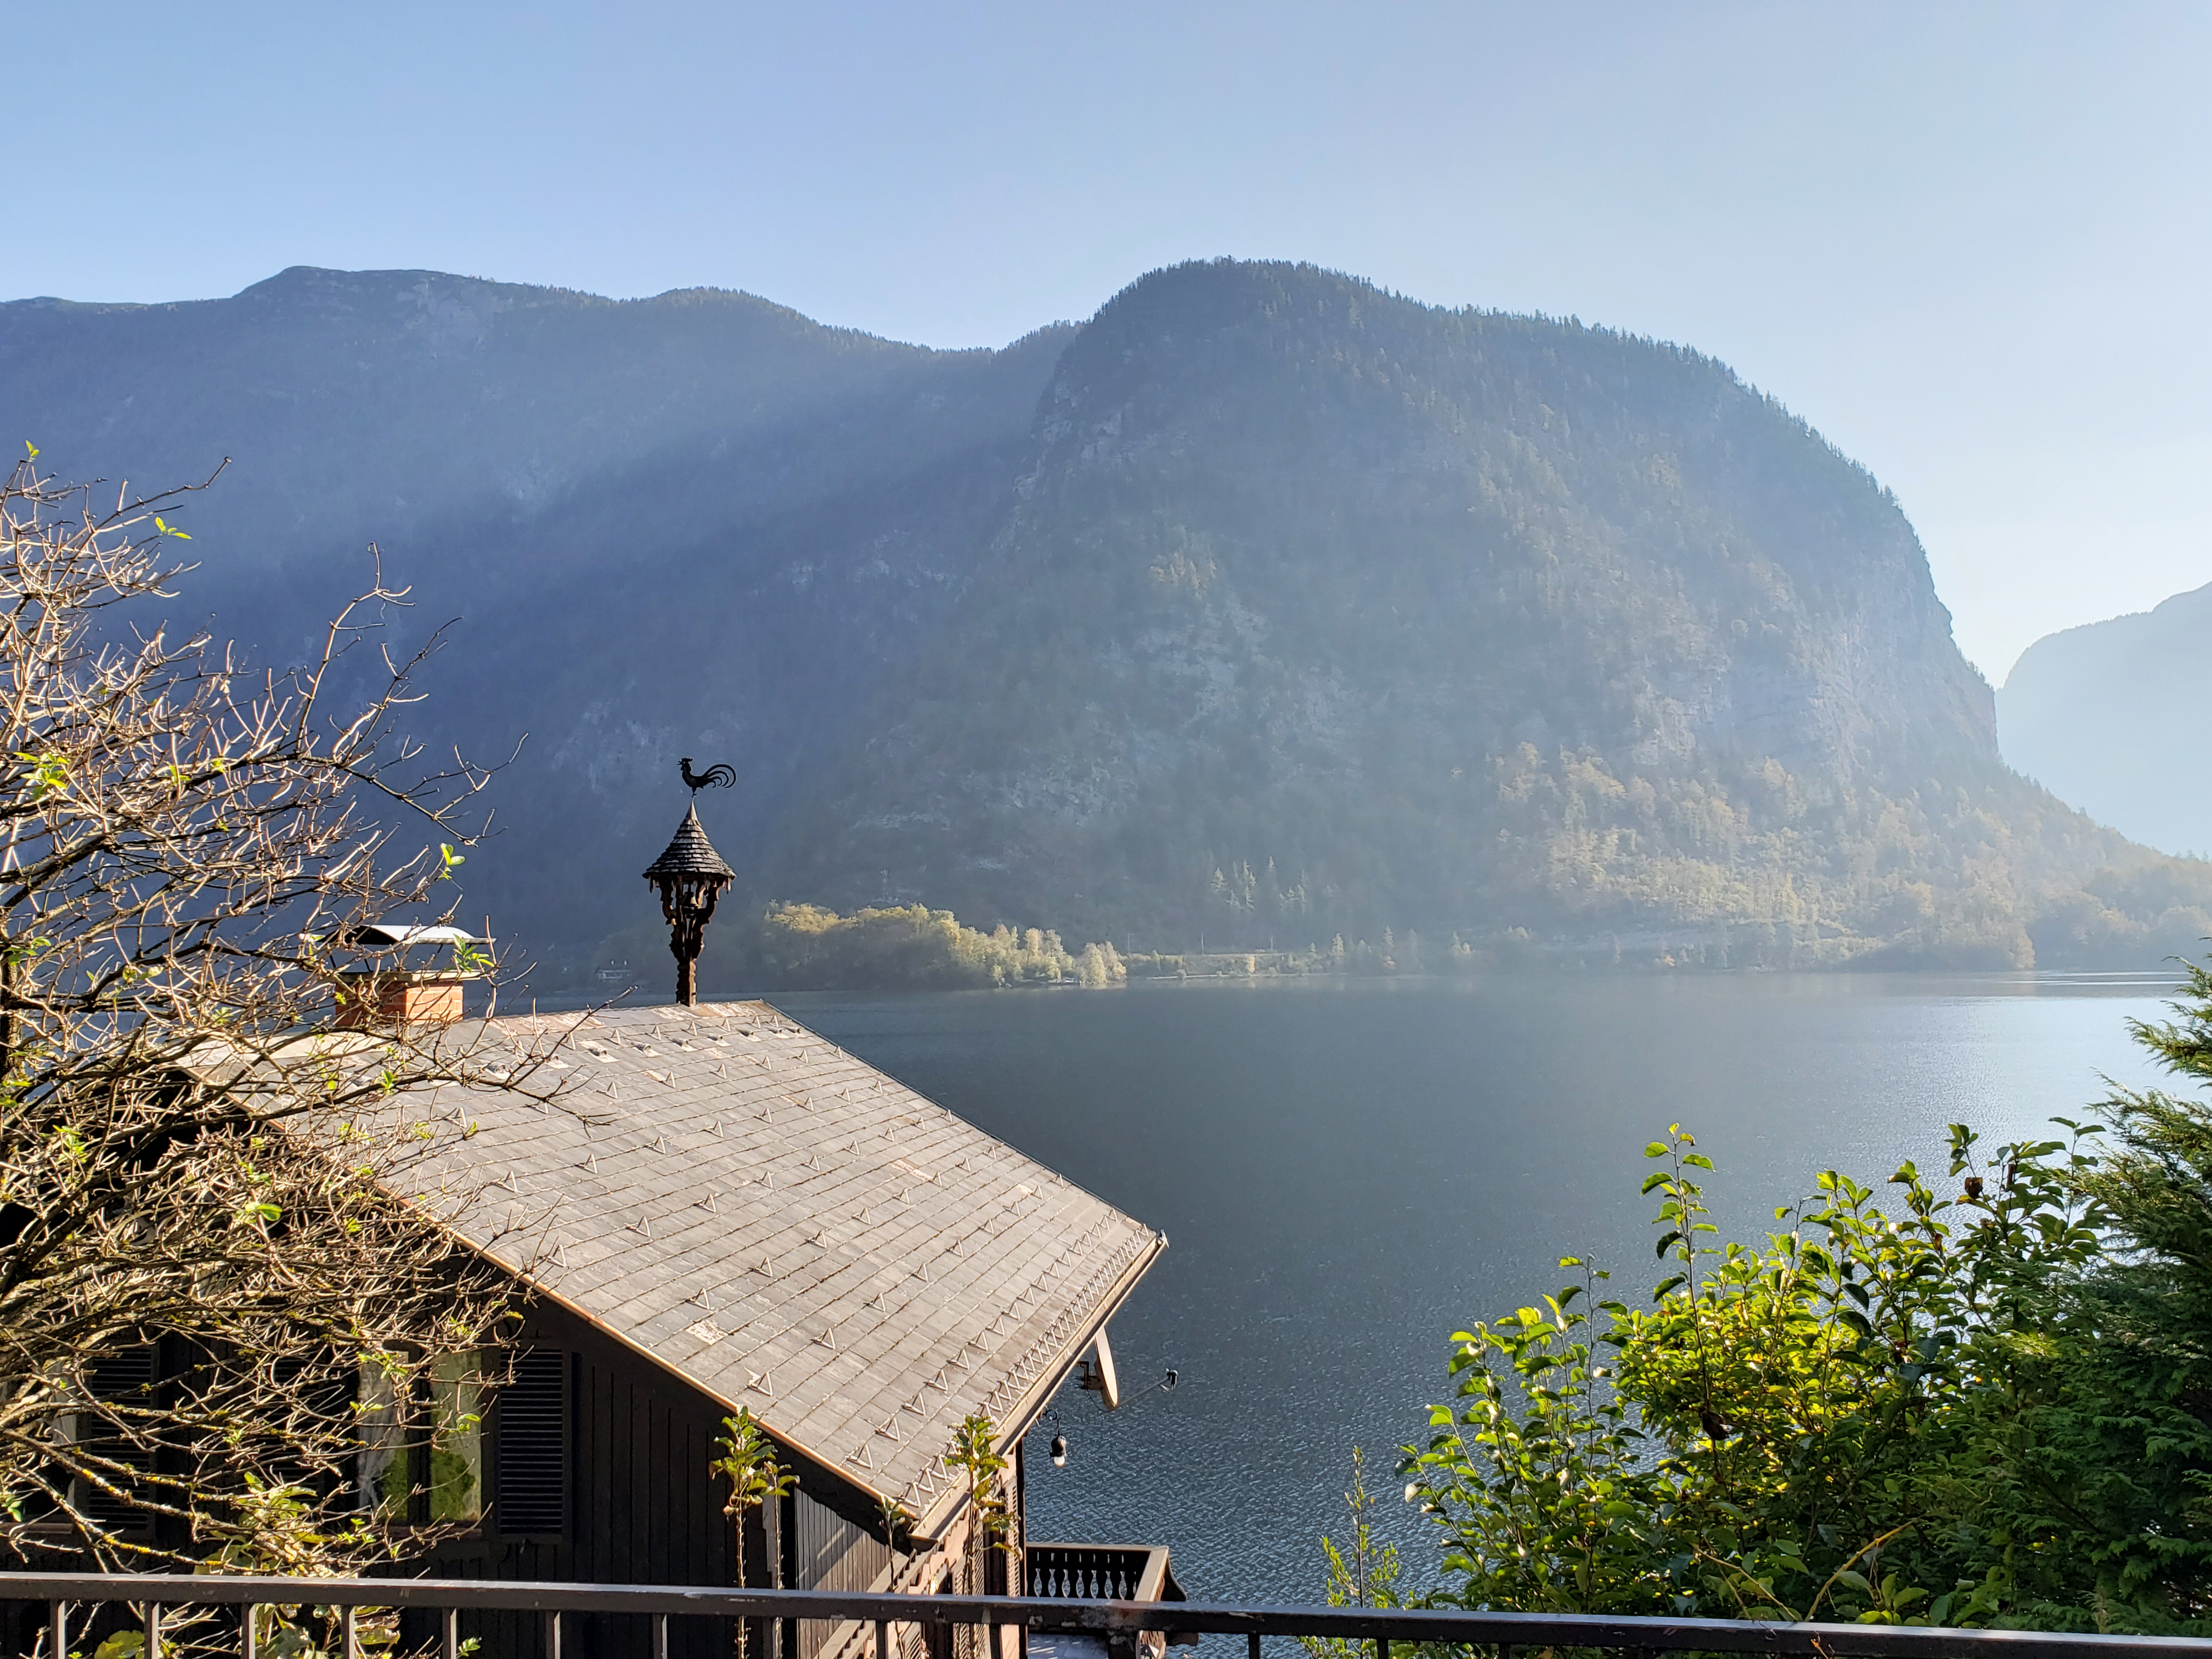 A Day Trip To Hallstatt, Austria - A Complete Guide